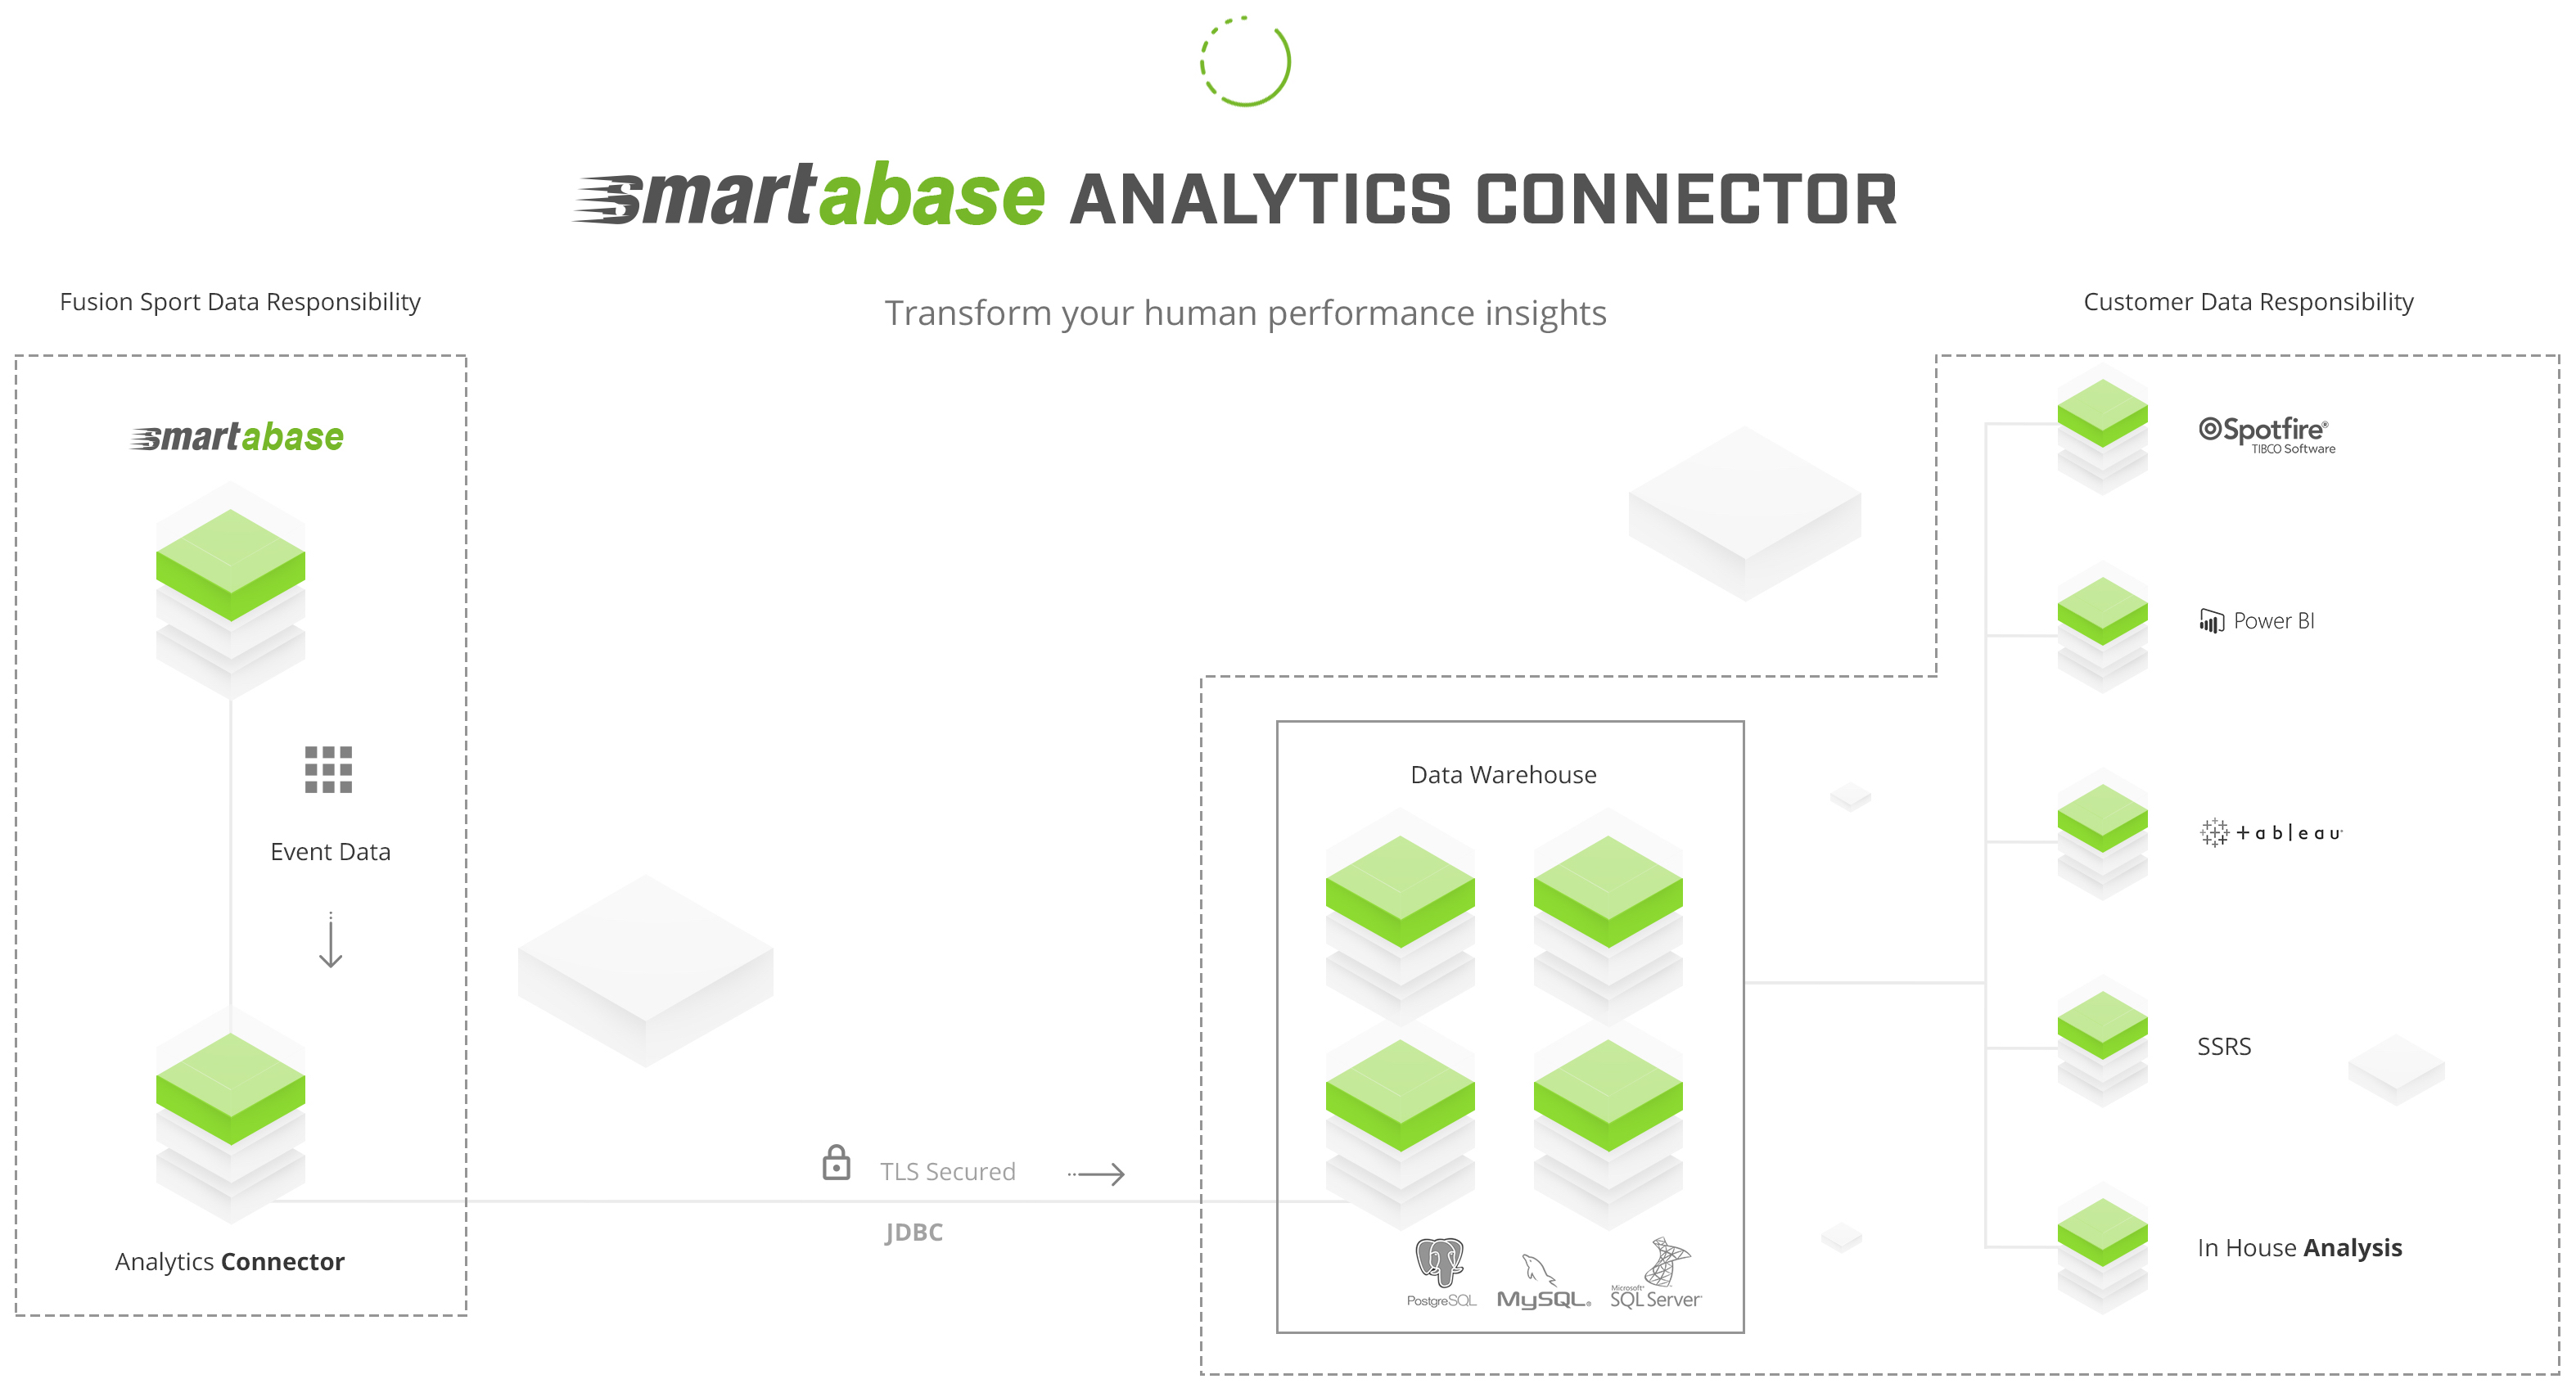 Diagram showing how the analytics connector works